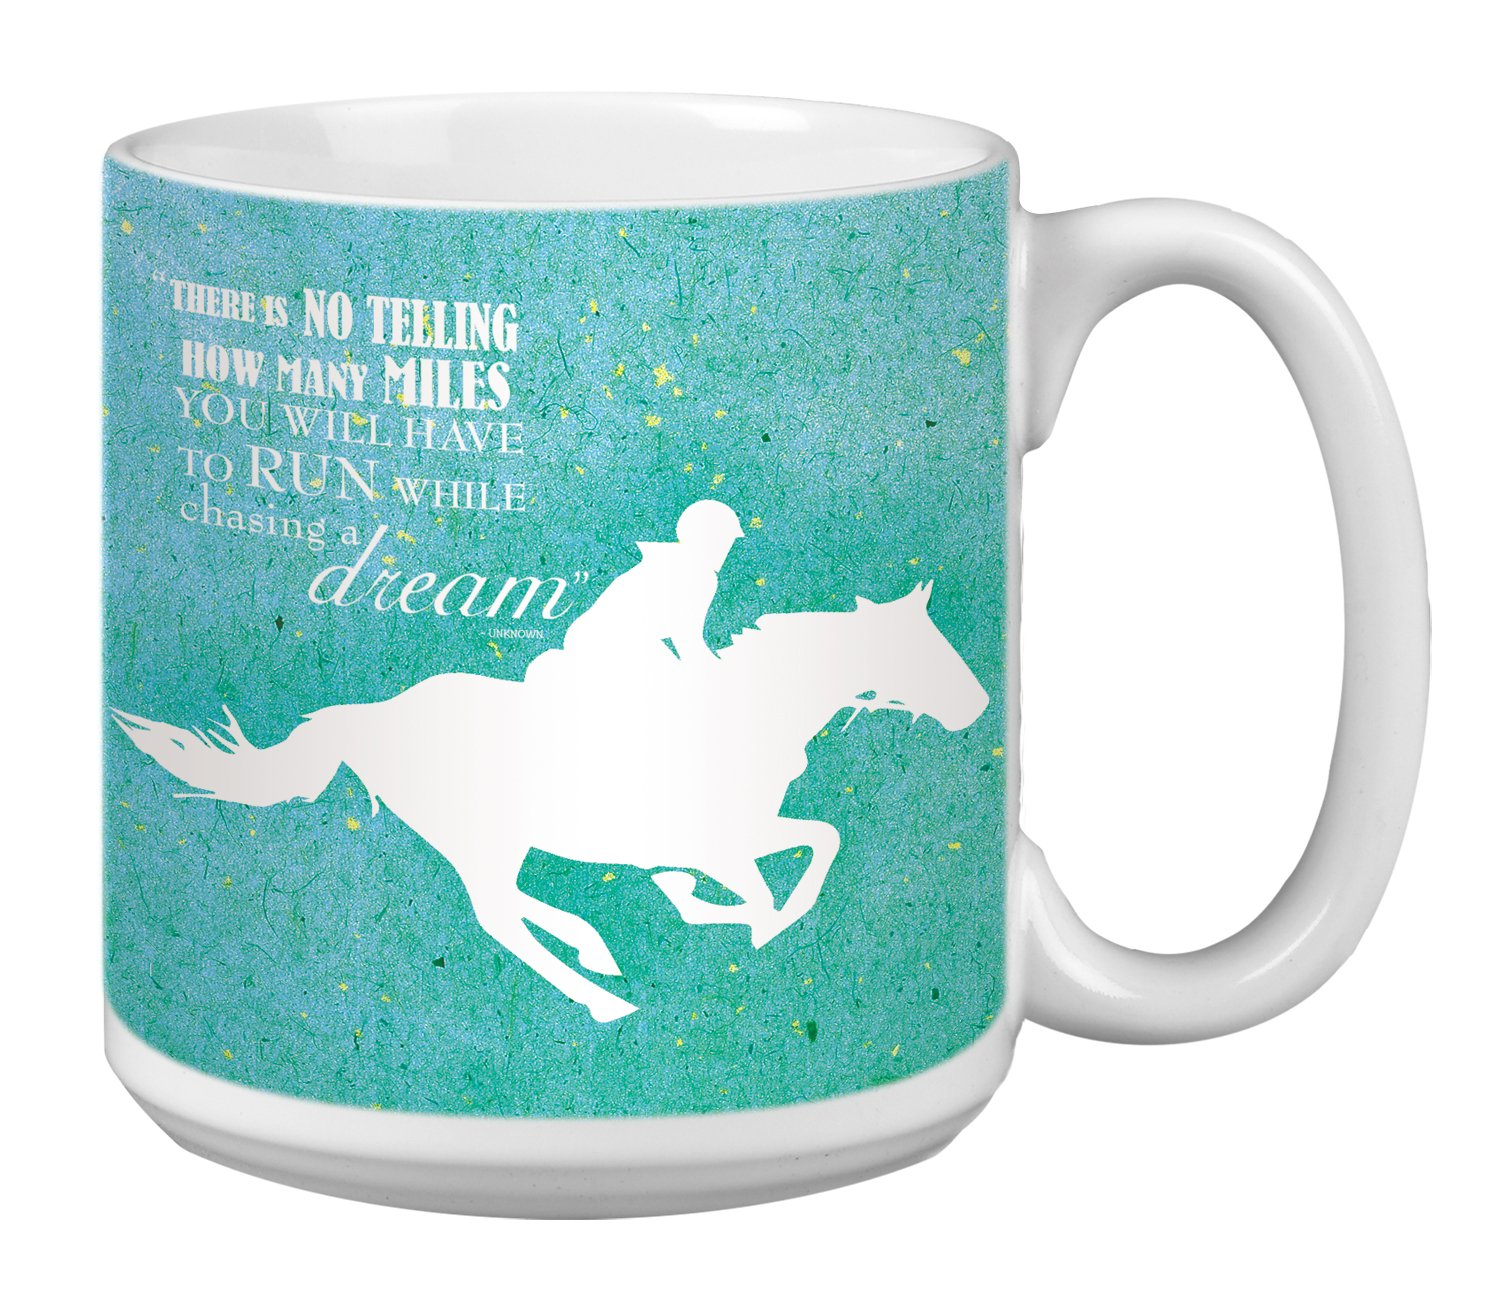 XM29823 Tree-Free Greetings Extra Large 20-Ounce Ceramic Coffee Mug Chasing A Dream Themed Inspriational Quote Art